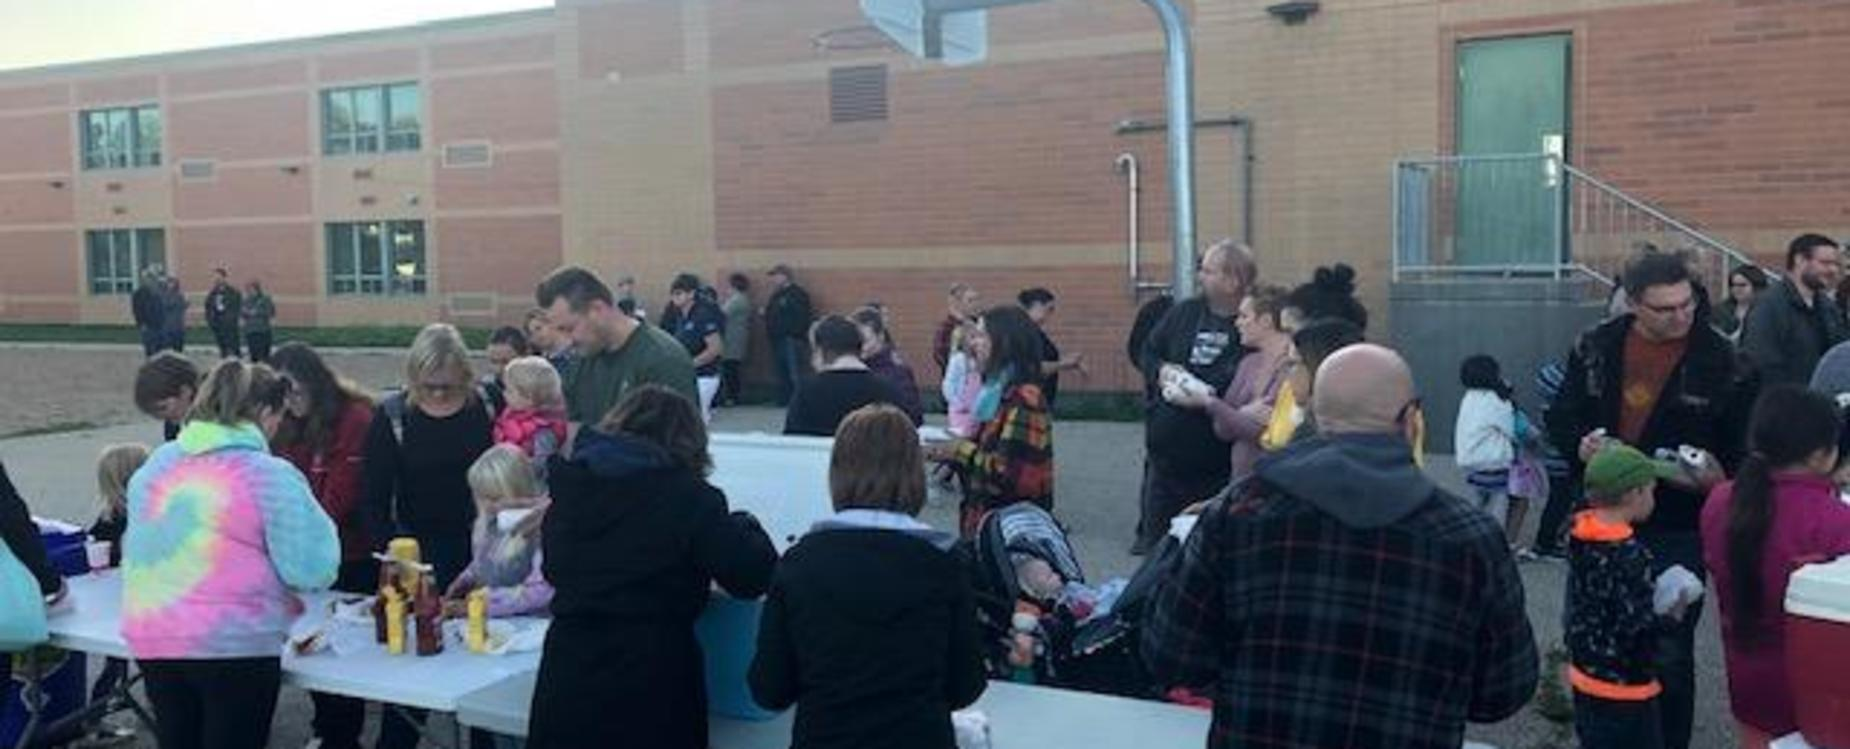 families enjoying a welcome back barbeque at the school